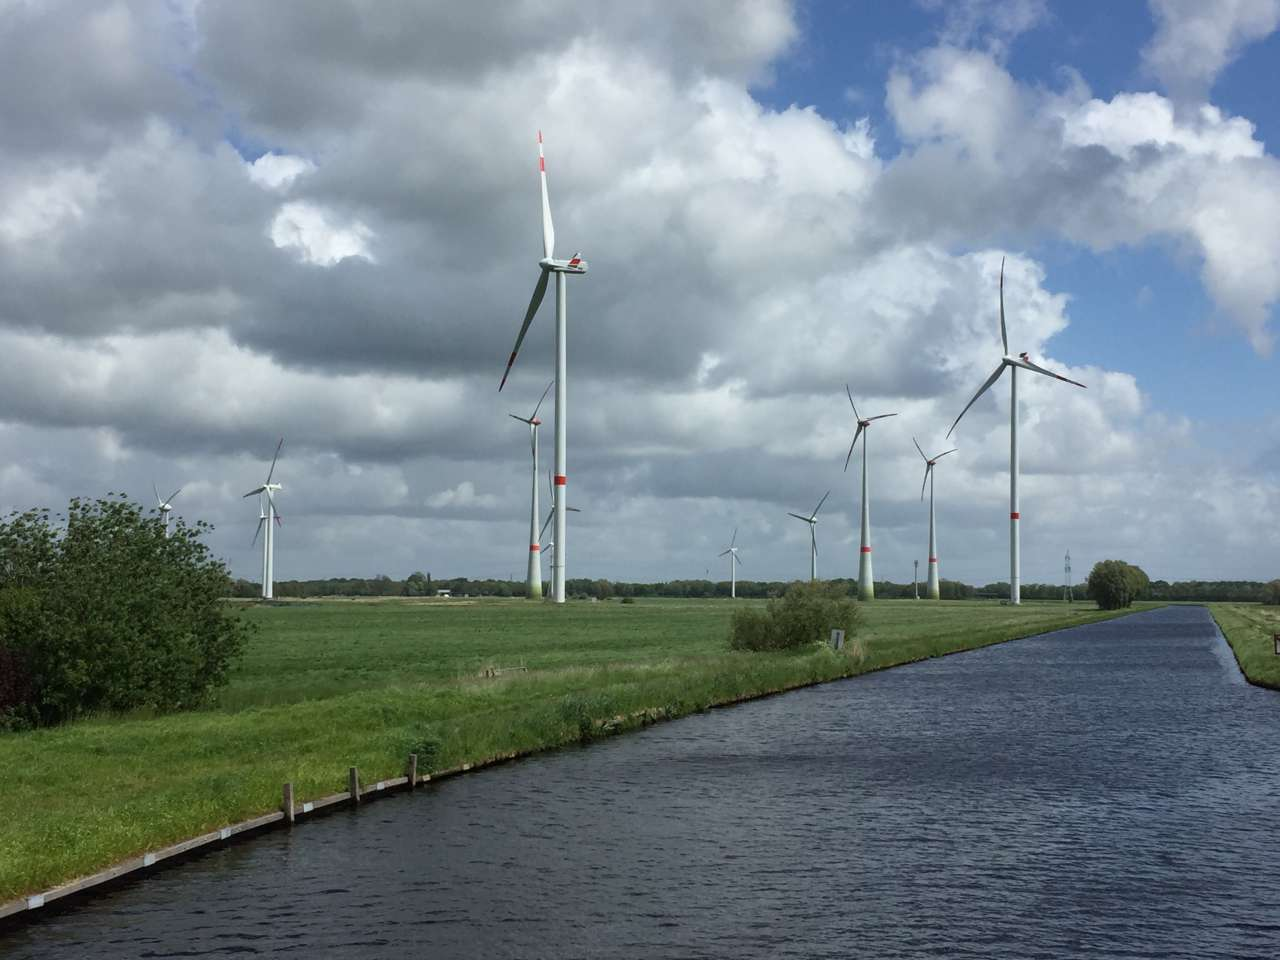 #Windkraft Rekord im Februar